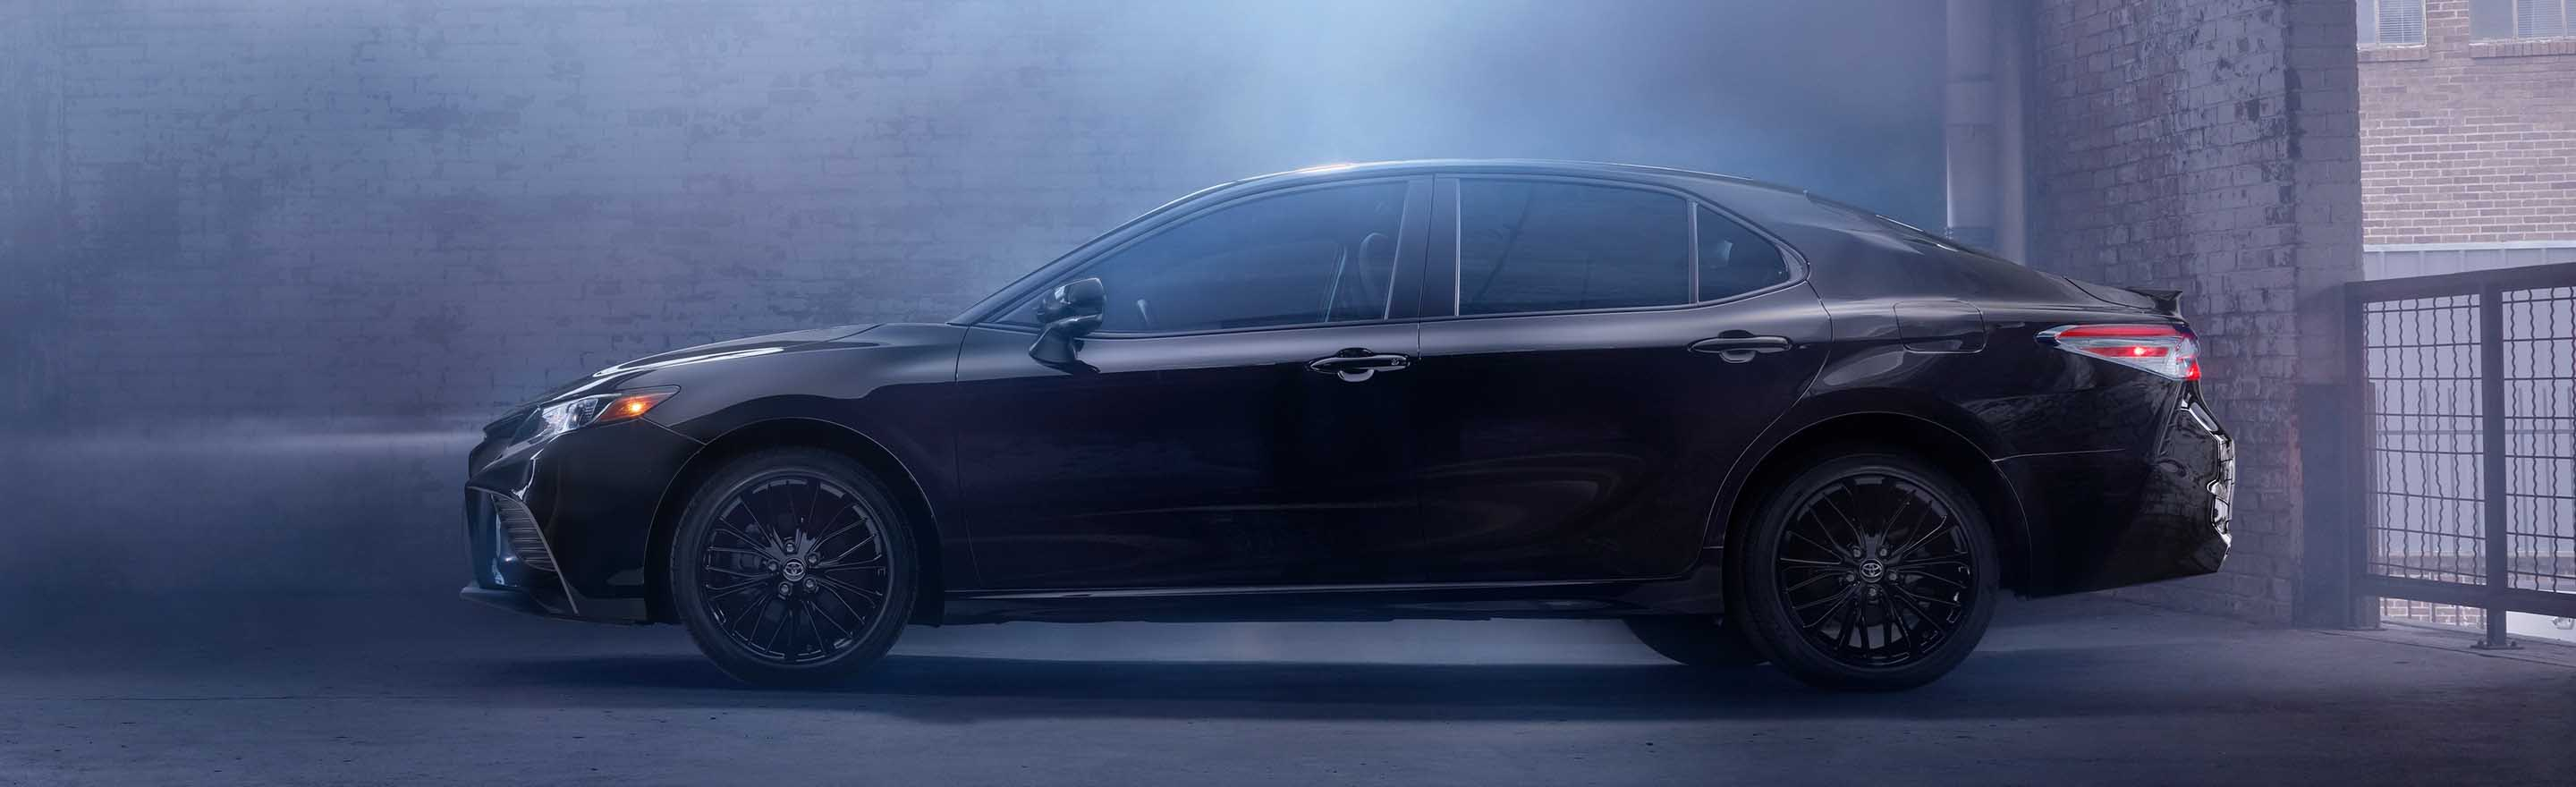 Discover The New 2020 Toyota Camry Sedan Now Available Near Pittsburgh